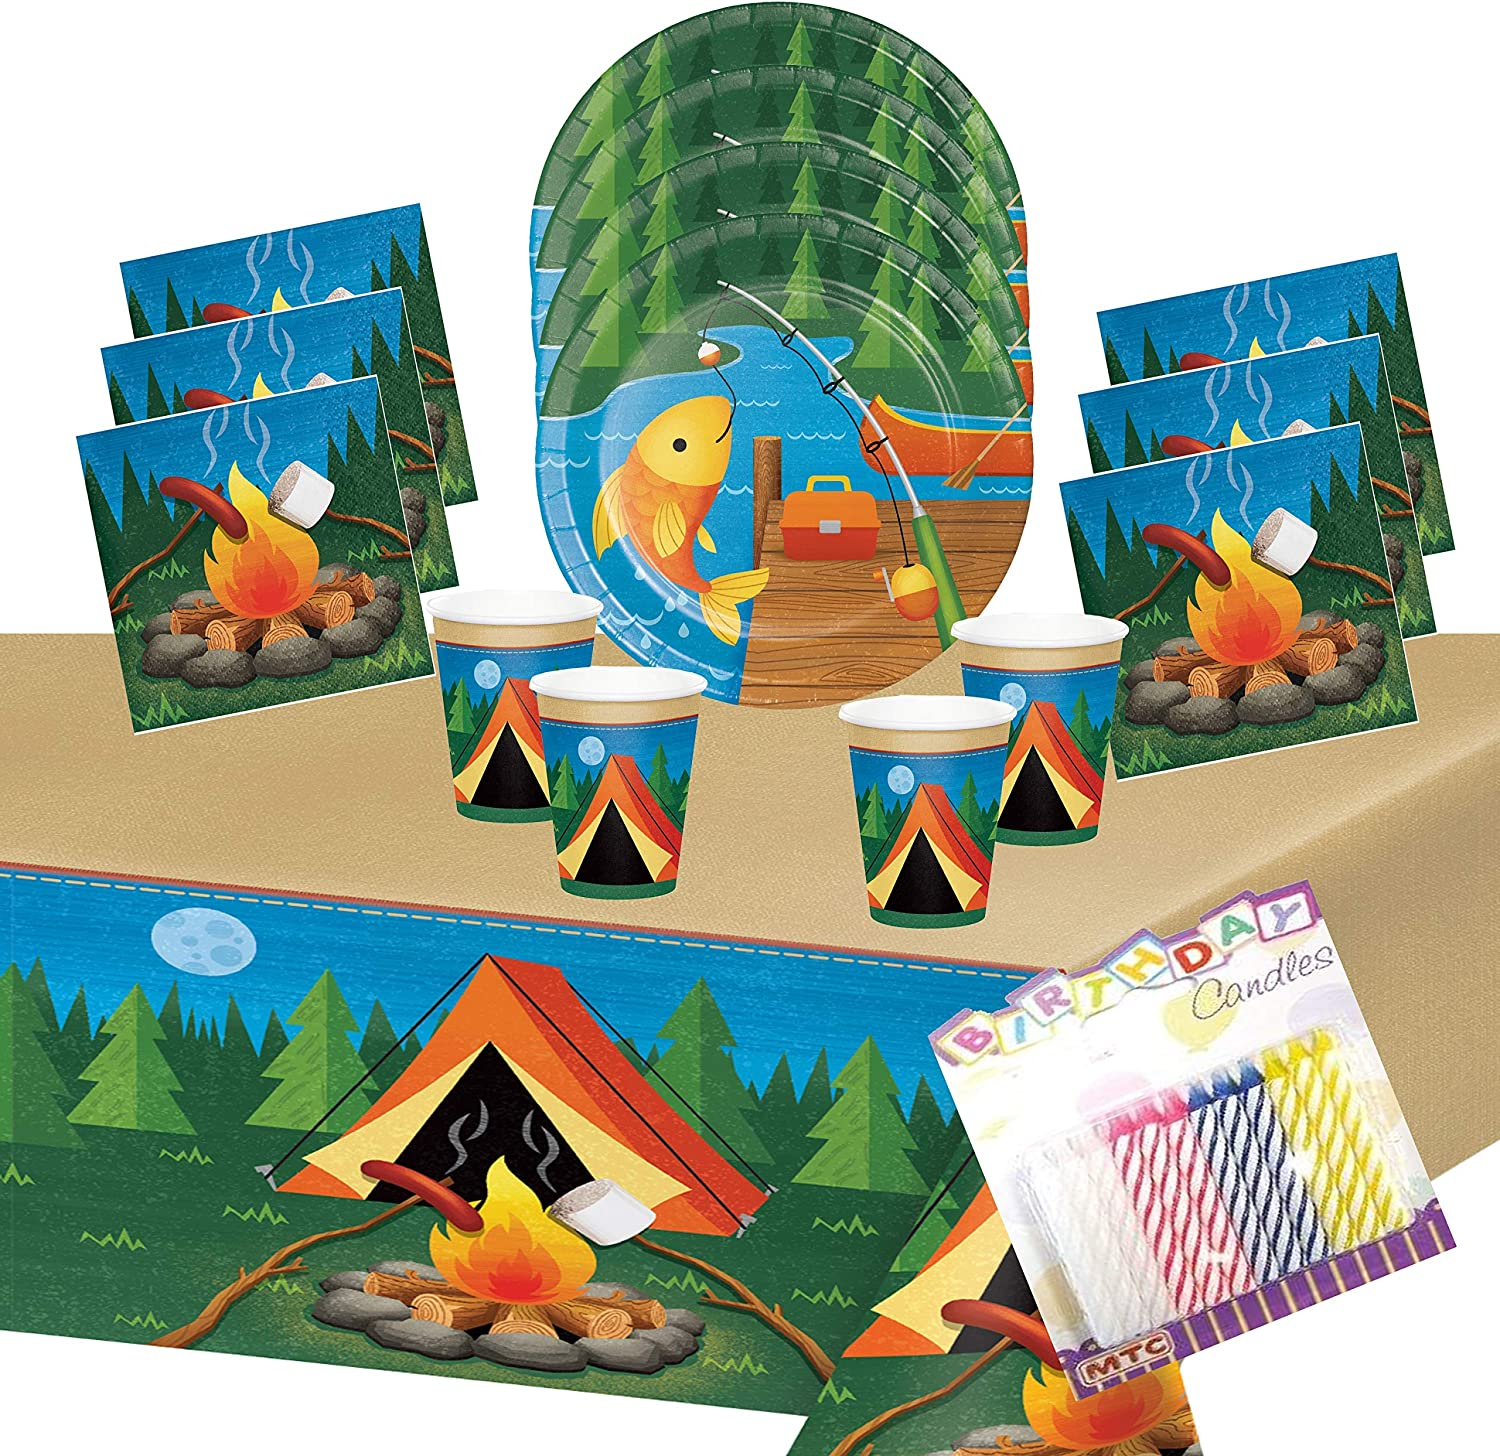 Campout Birthday Party Supplies Plate and Napkin Set Serves up to 16 Guests